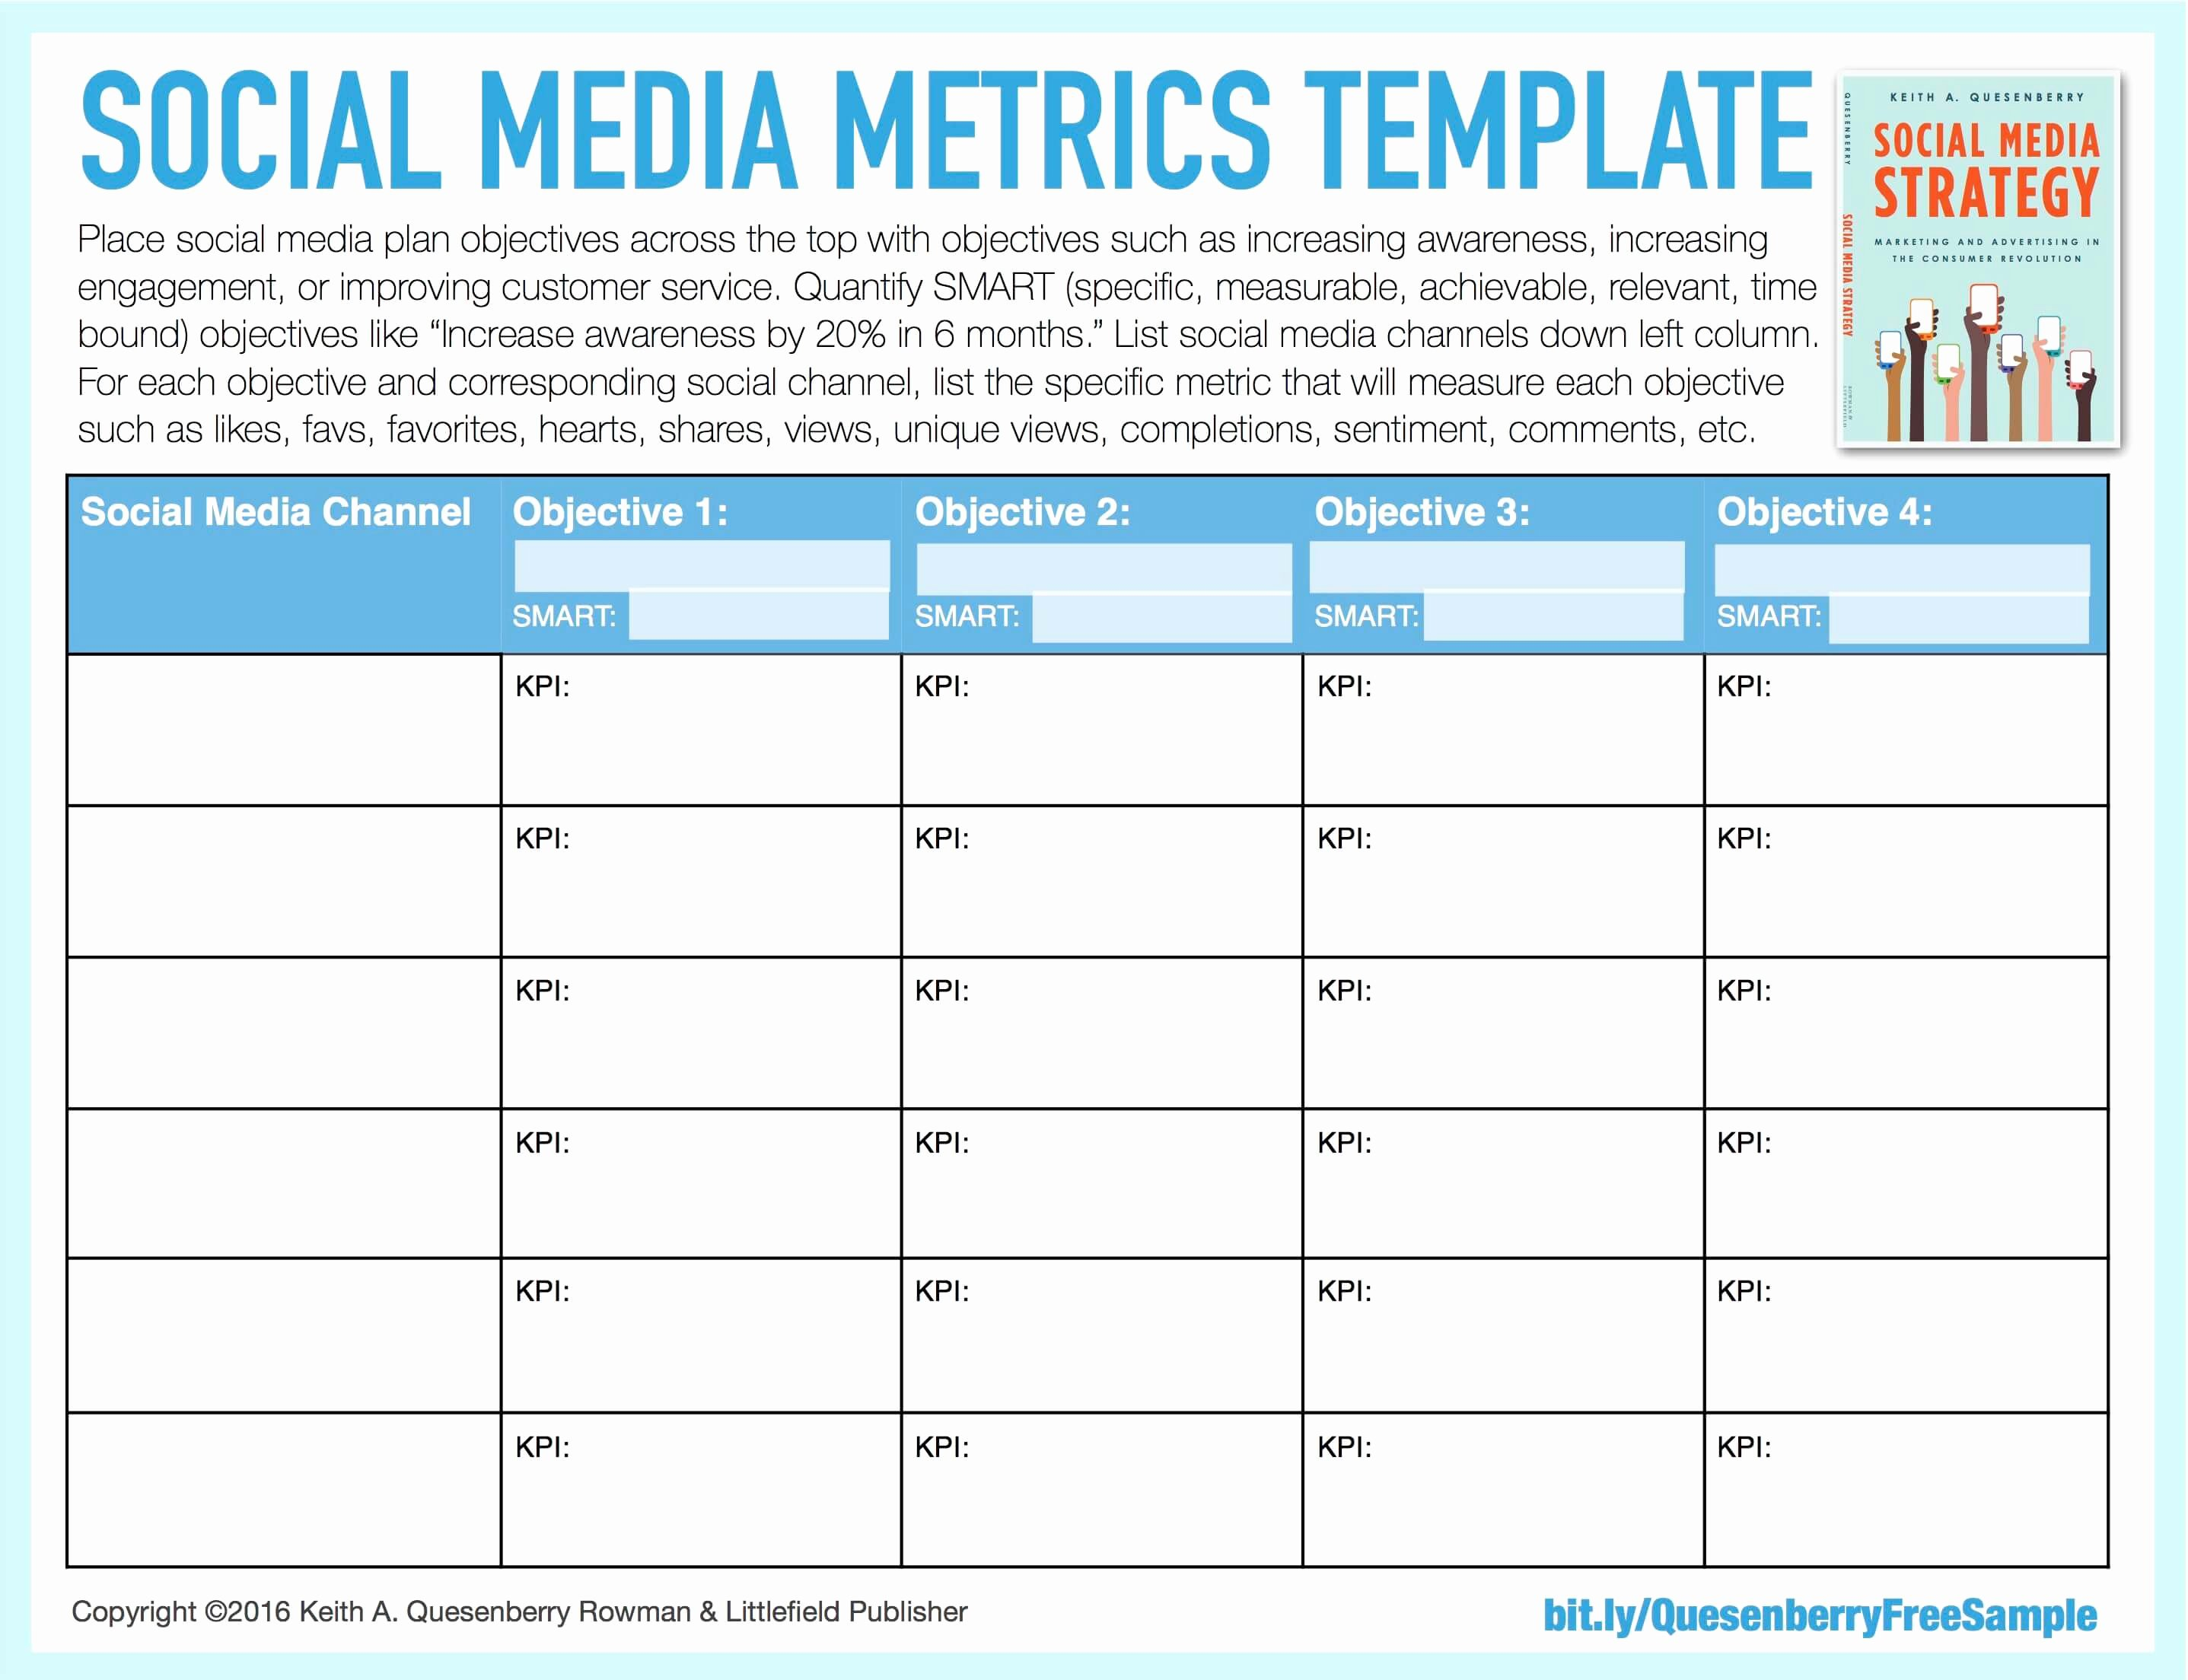 Social Media Plan Template Excel Luxury social Media Templates Keith A Quesenberry